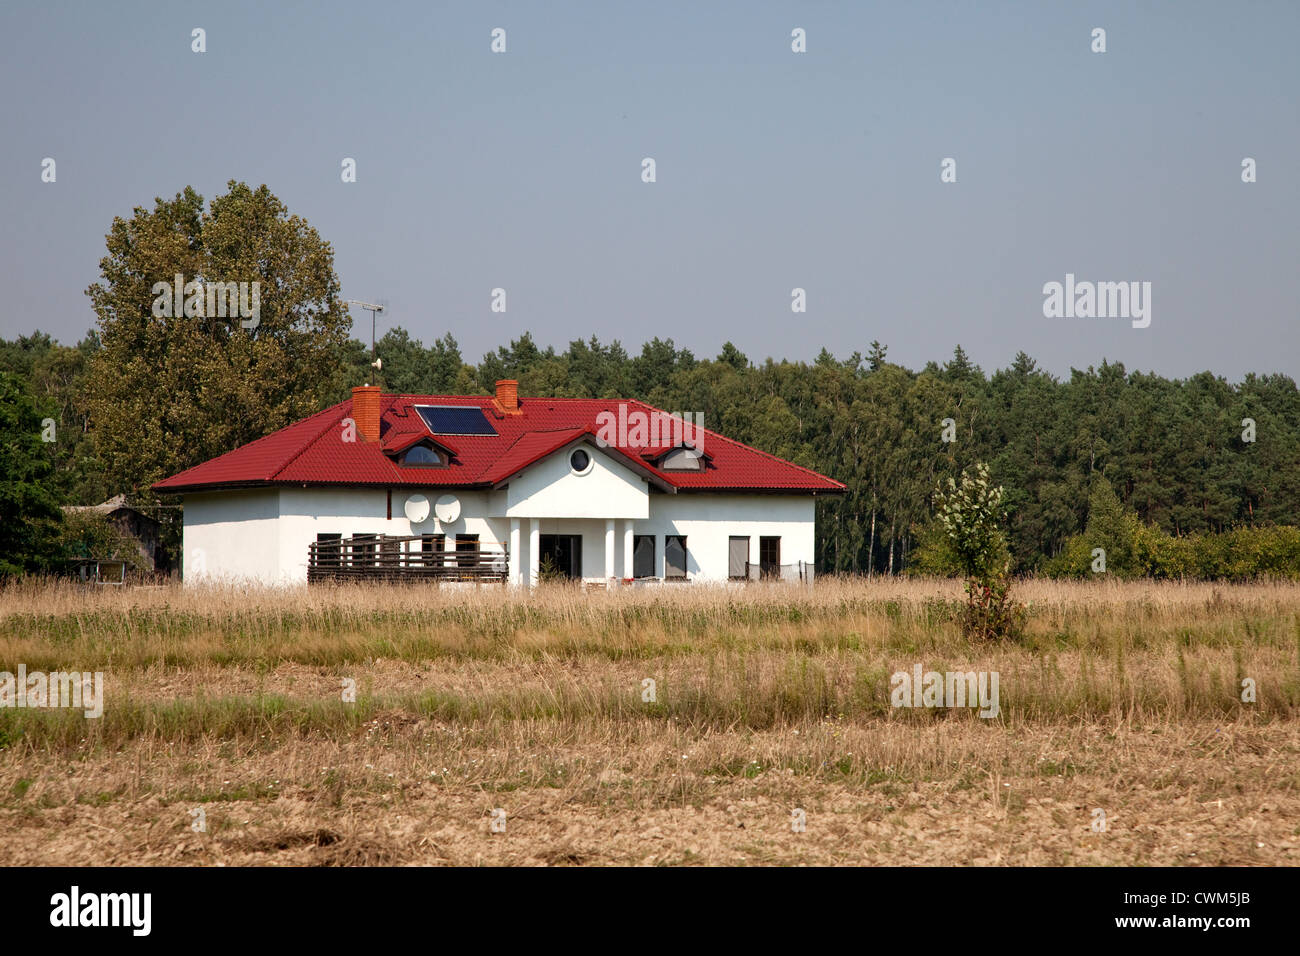 Landlord's beautiful house situated in the center of his tenant's farm. Zawady Central Poland - Stock Image